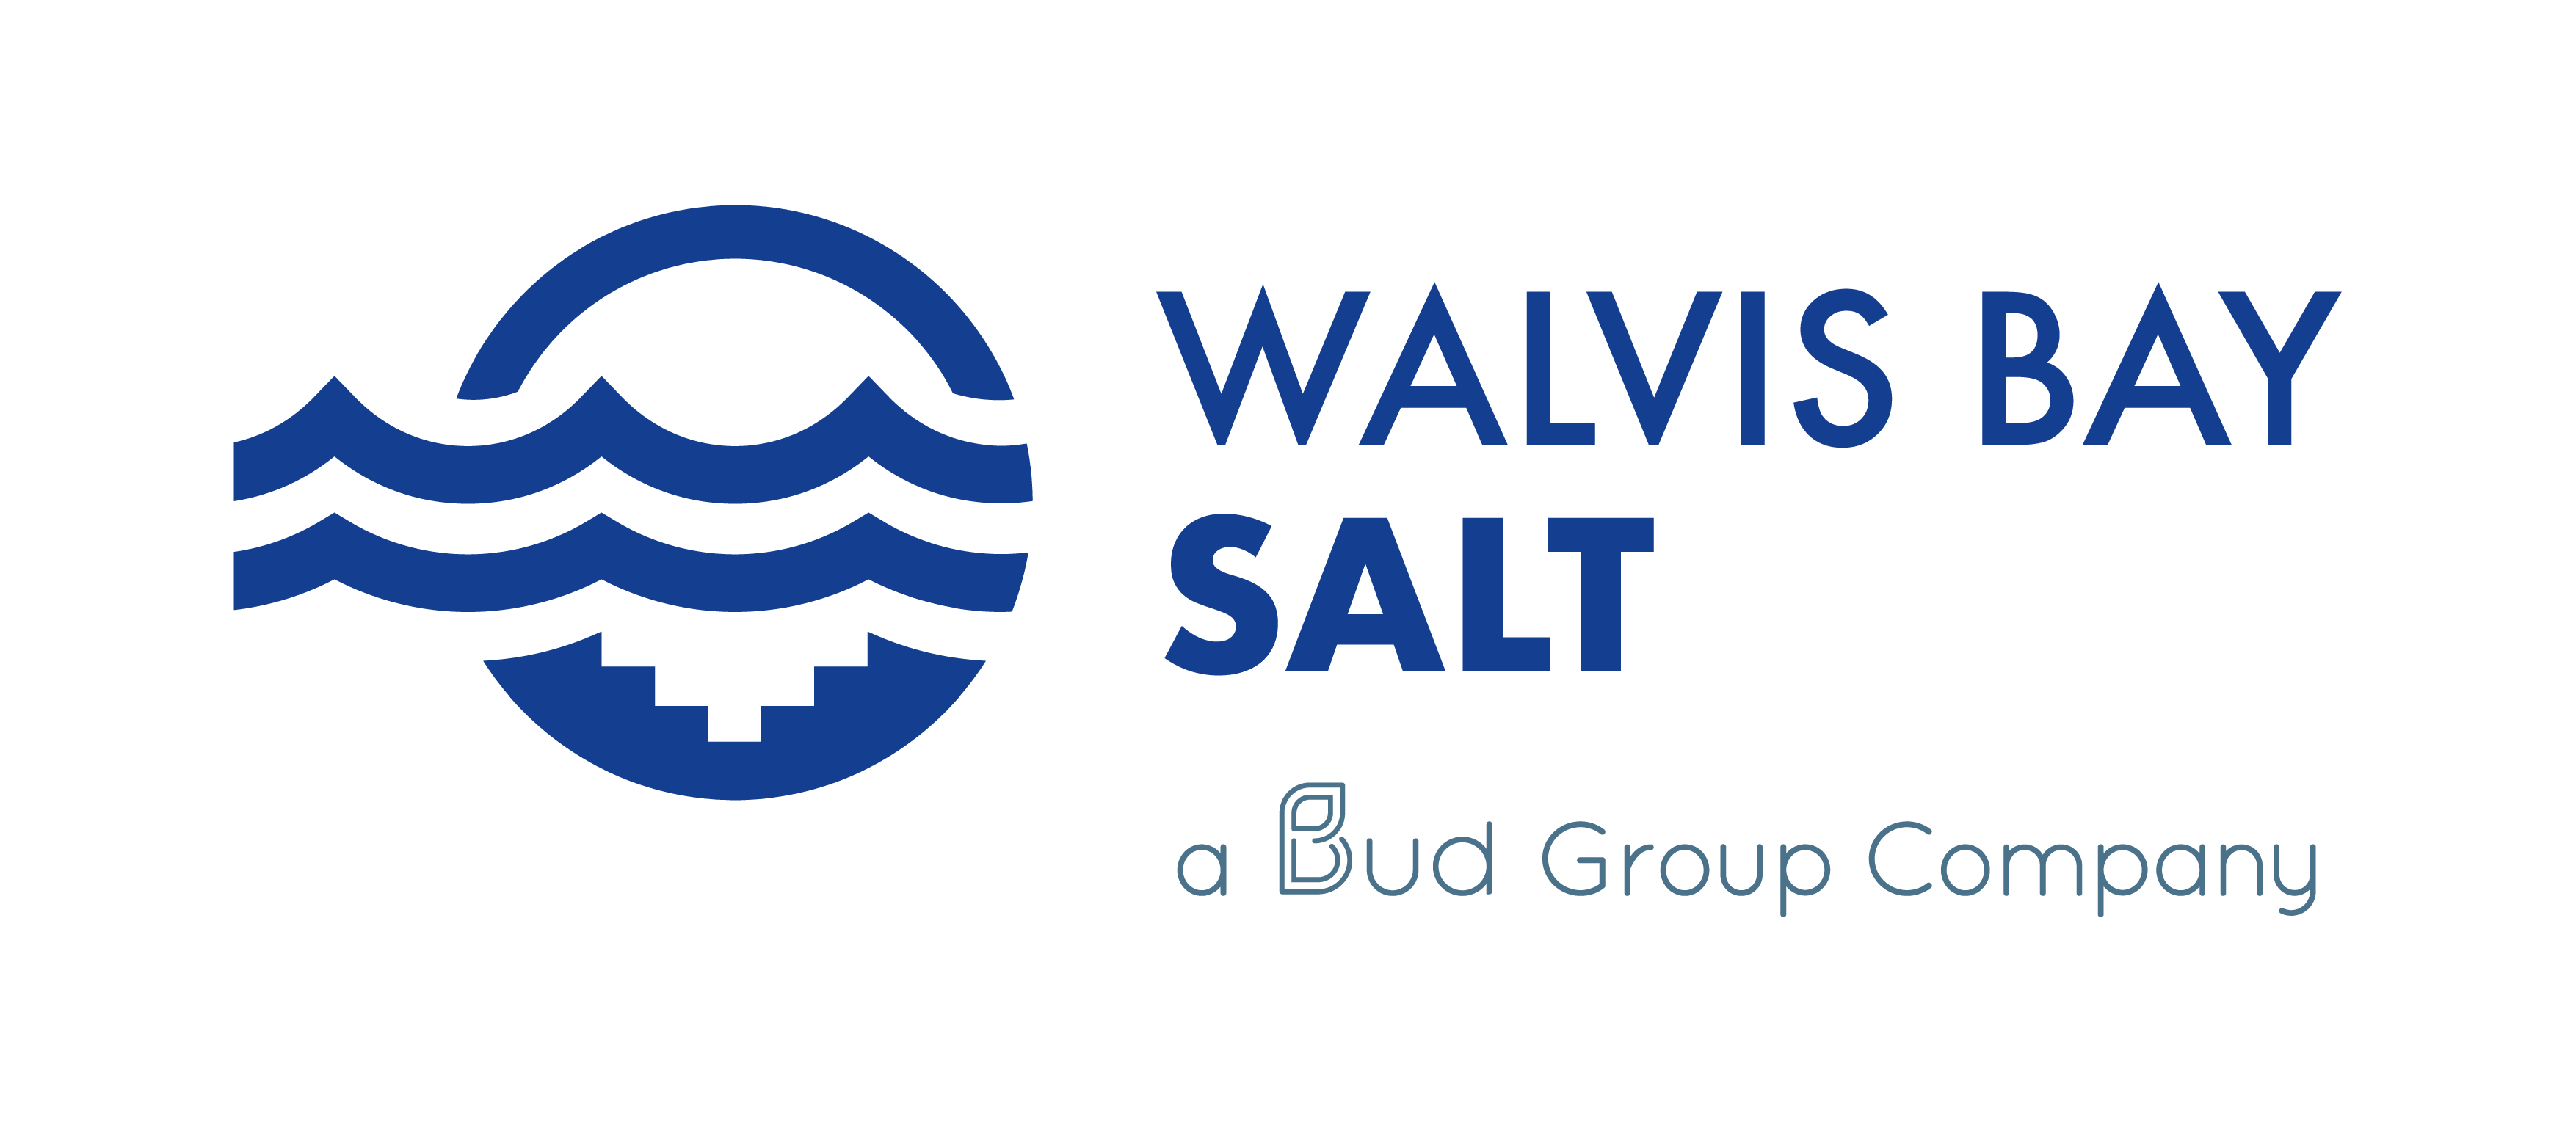 Walvis Bay Salt Holdings (Pty) Ltd